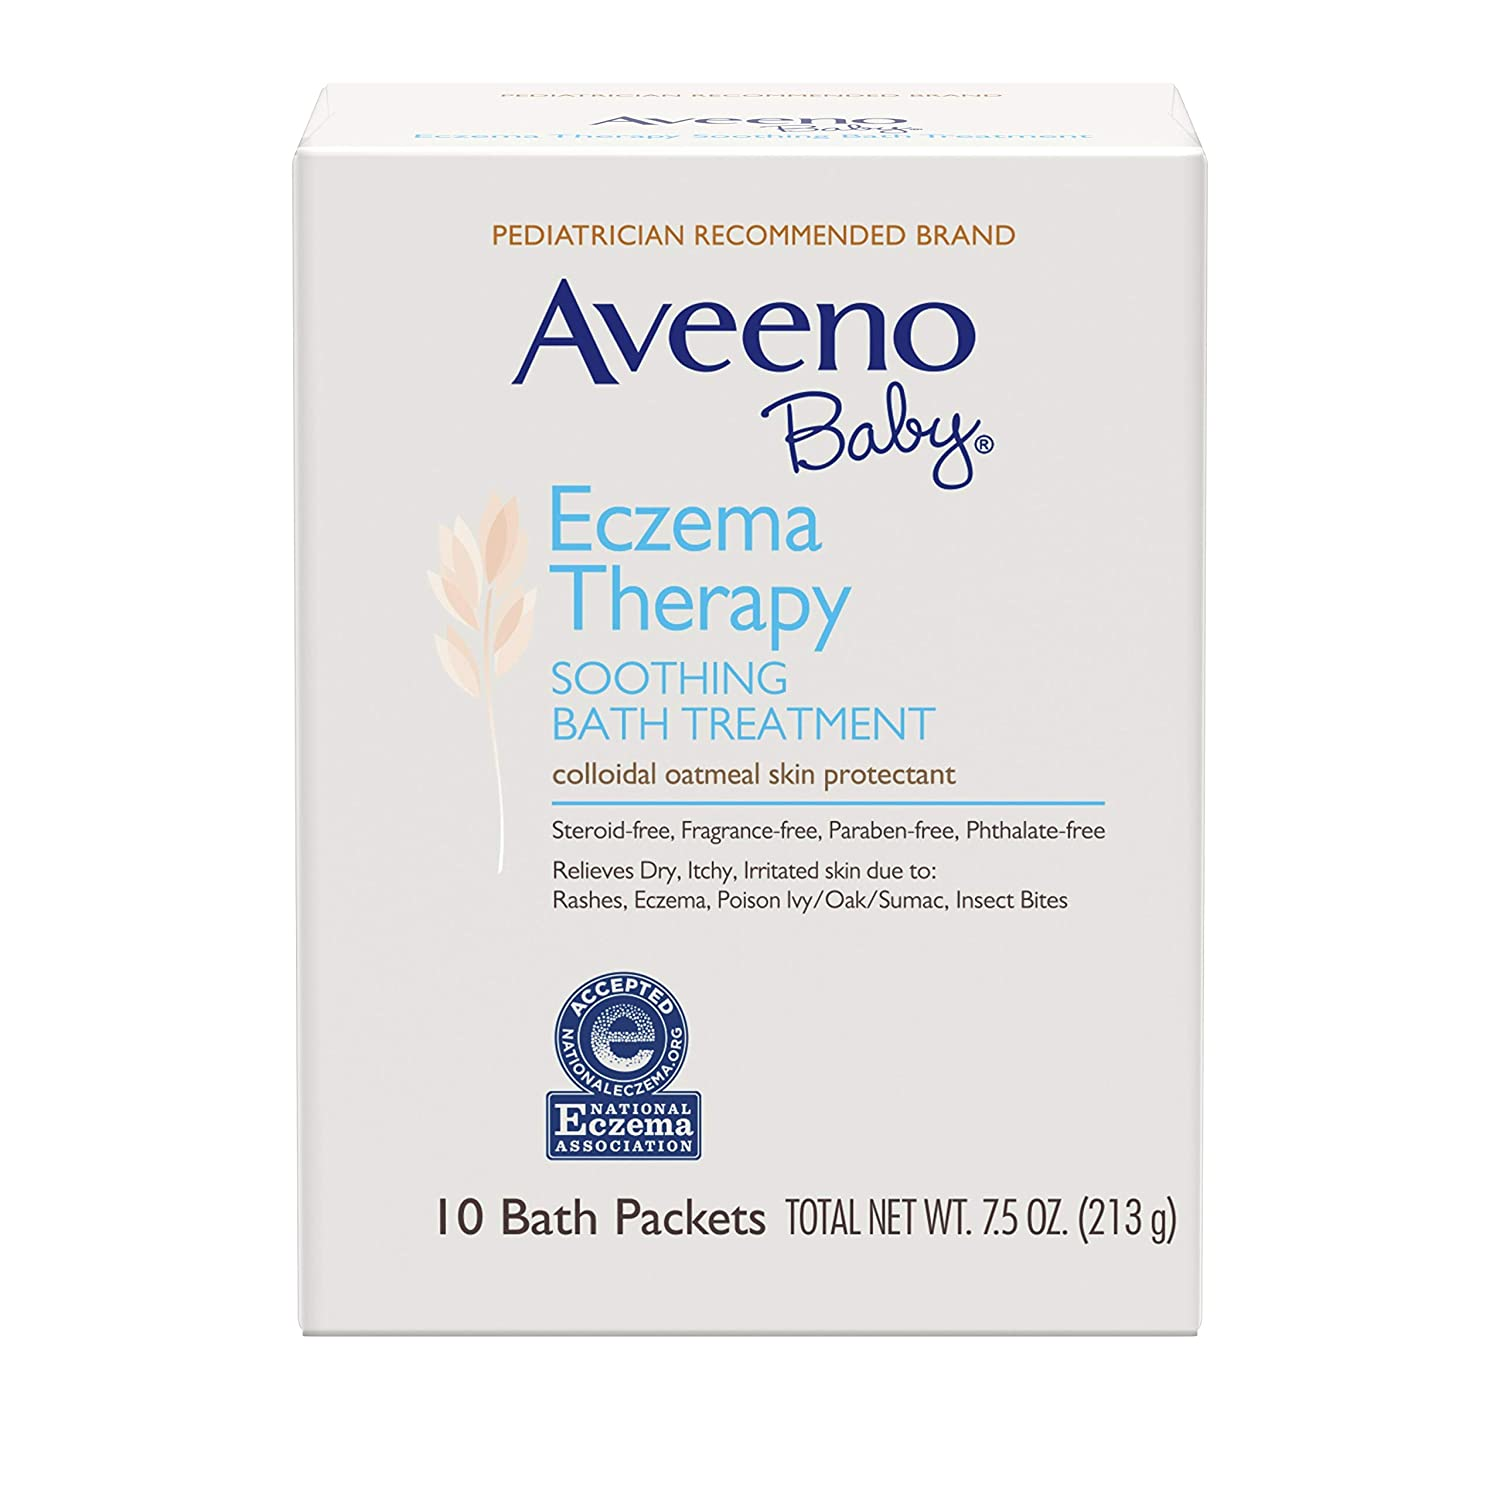 Aveeno Baby Eczema Therapy Soothing Bath Treatment with Natural Oatmeal, 10 ct.